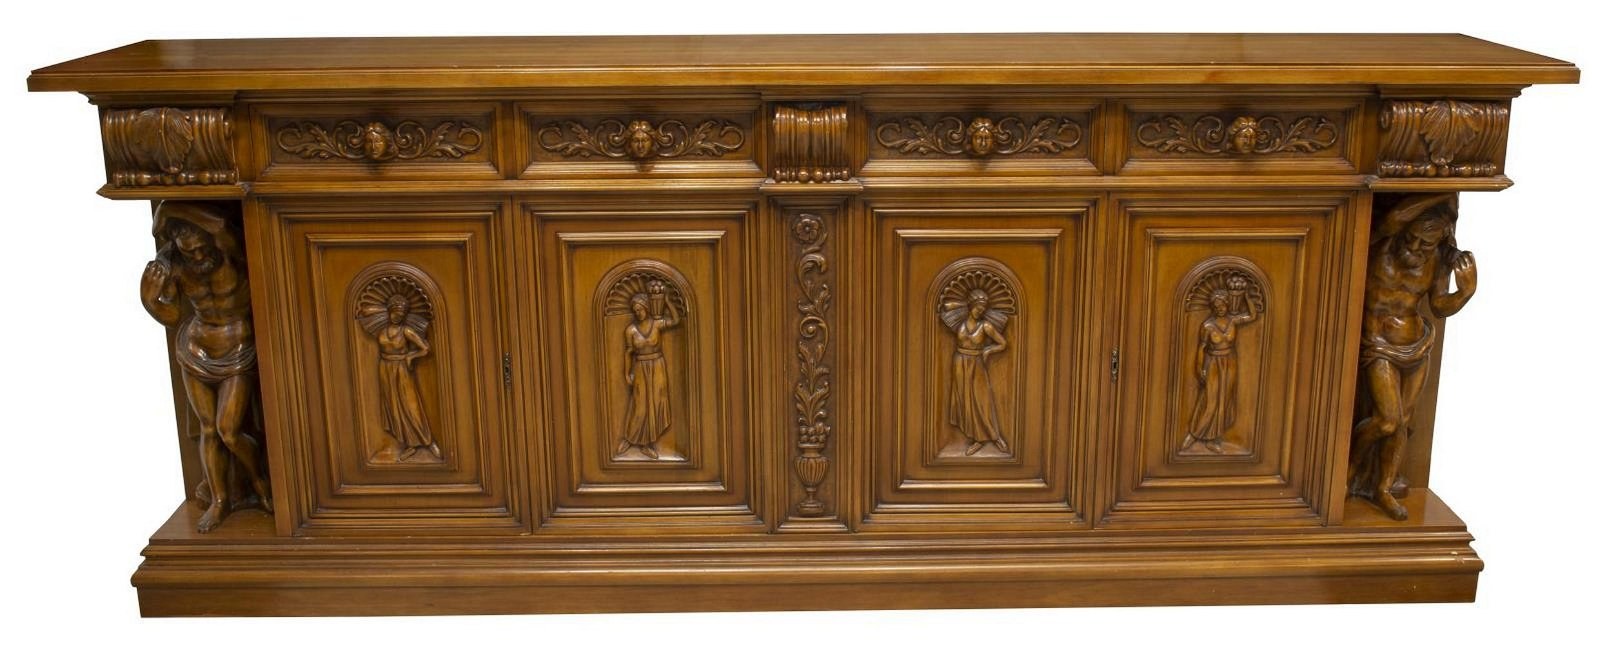 ITALIAN FIGURAL CARVED SIDEBOARD